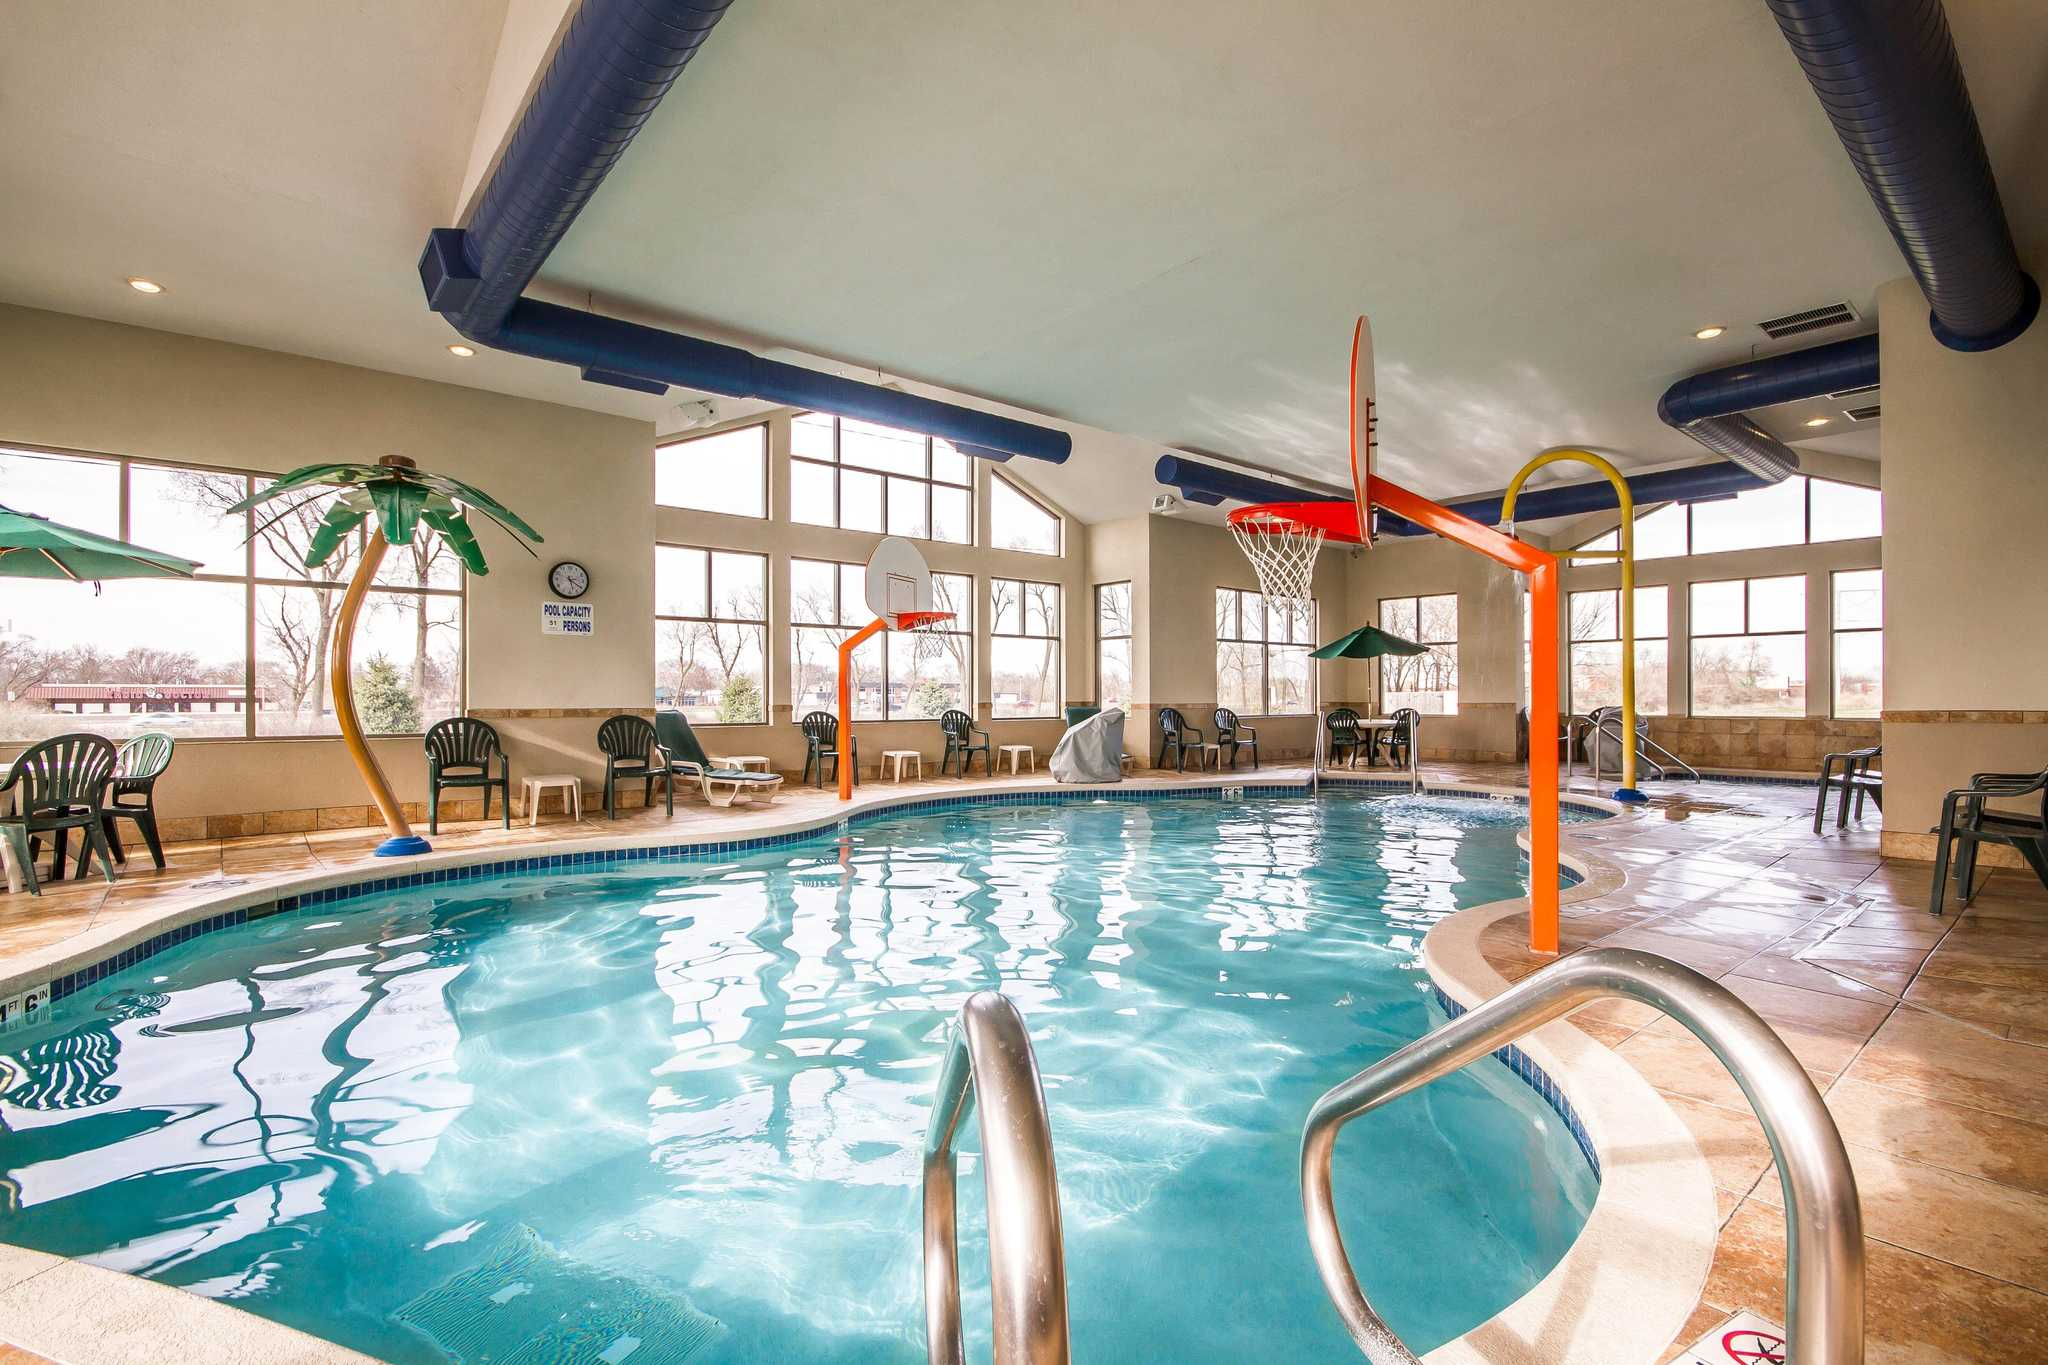 Sleep Inn Suites Coupons Near Me In Madison 8coupons